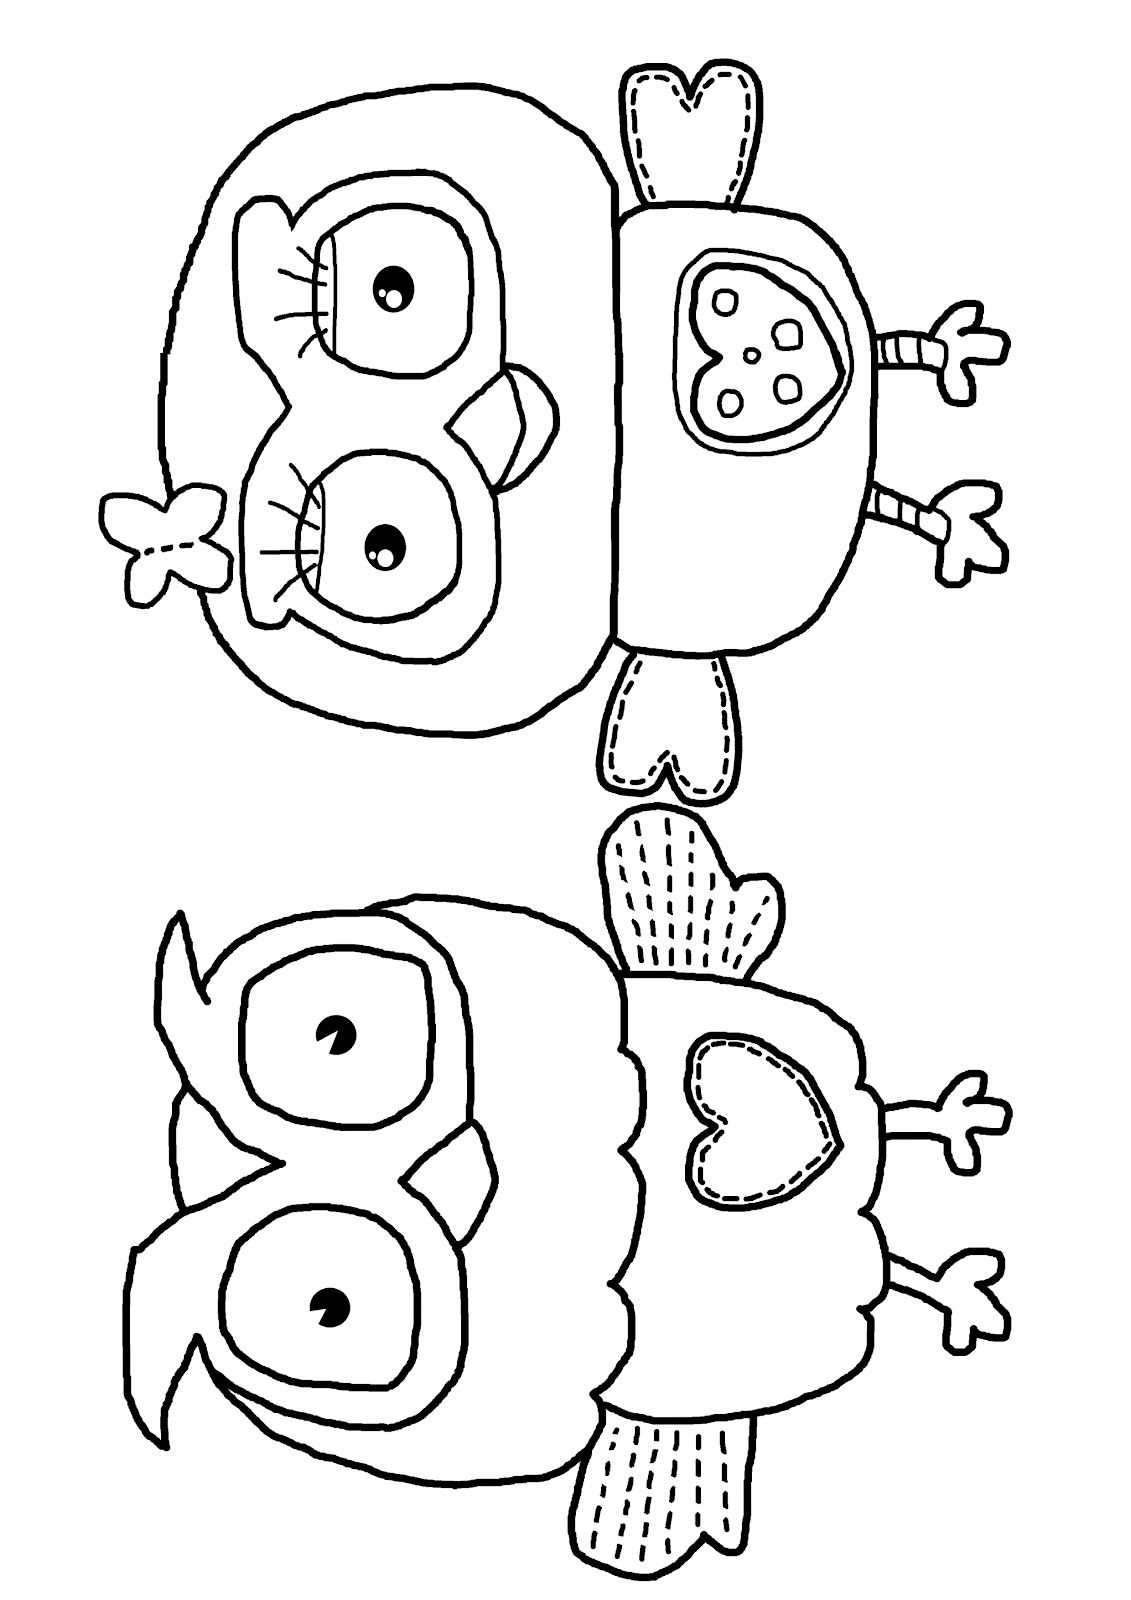 hootabelle activity colouring page - Colouring In Picture